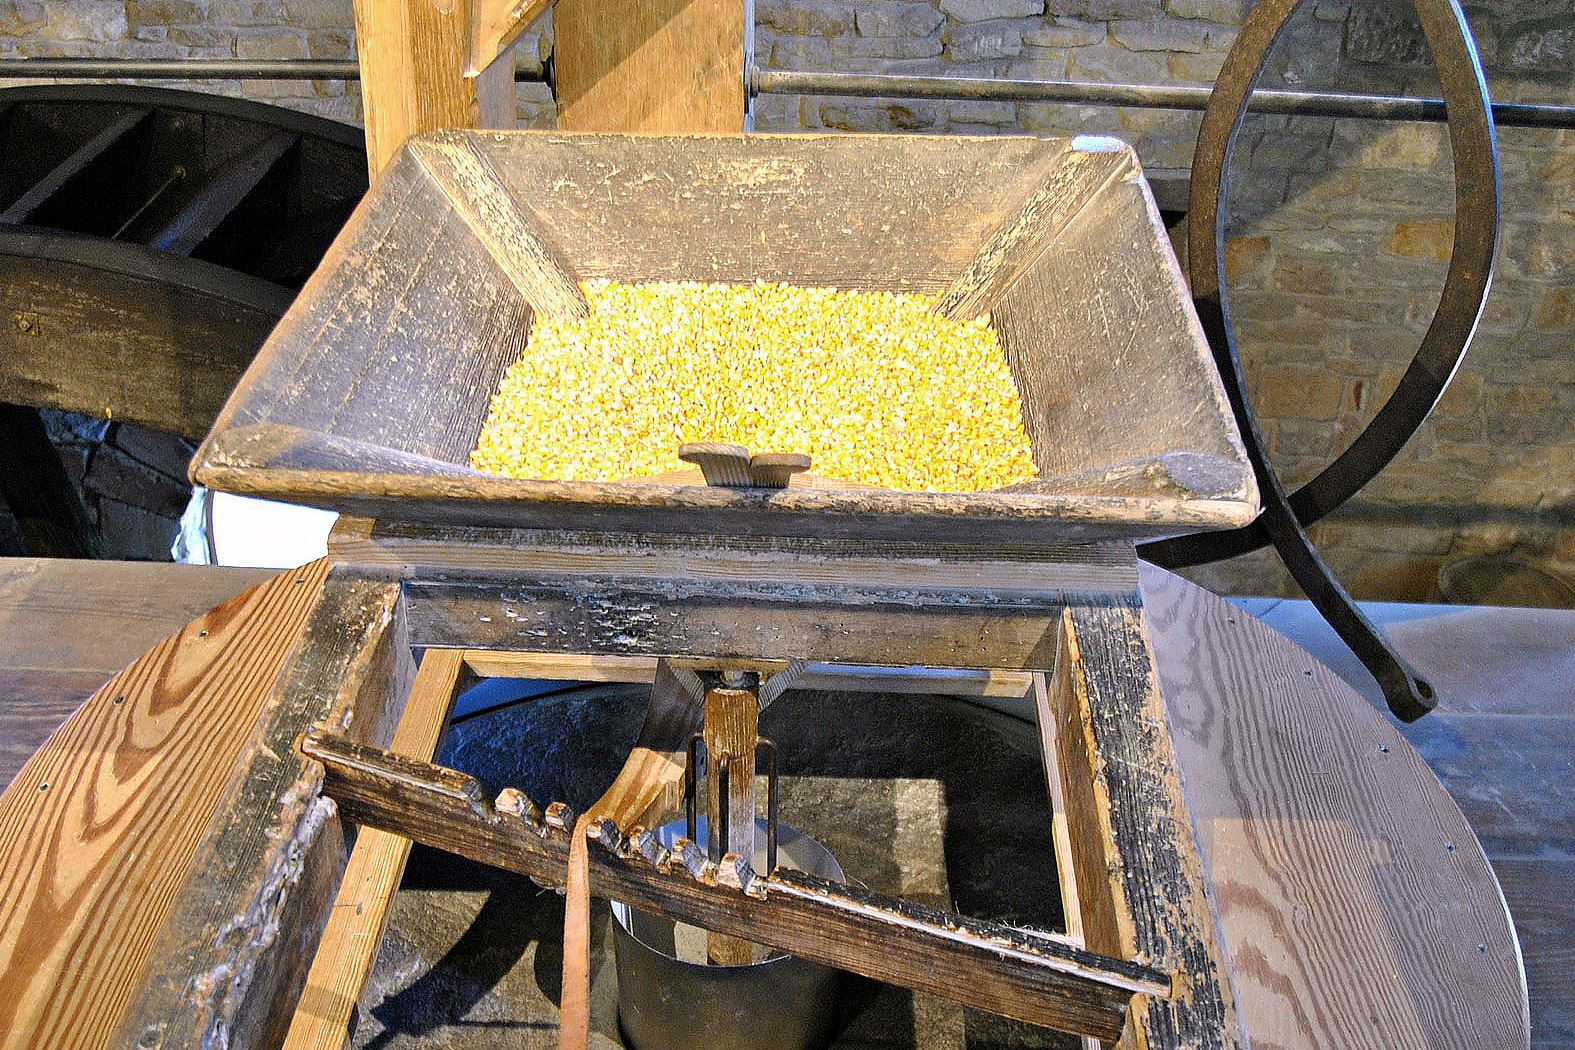 gristmill0518_grist_mill_grinding Dried corn is poured into a grain hopper located just above a spinning millstone at George Washington's reconstructed gristmill at Mount Vernon. Grain products made on-site include cornmeal, grits, pancake mix and flour.